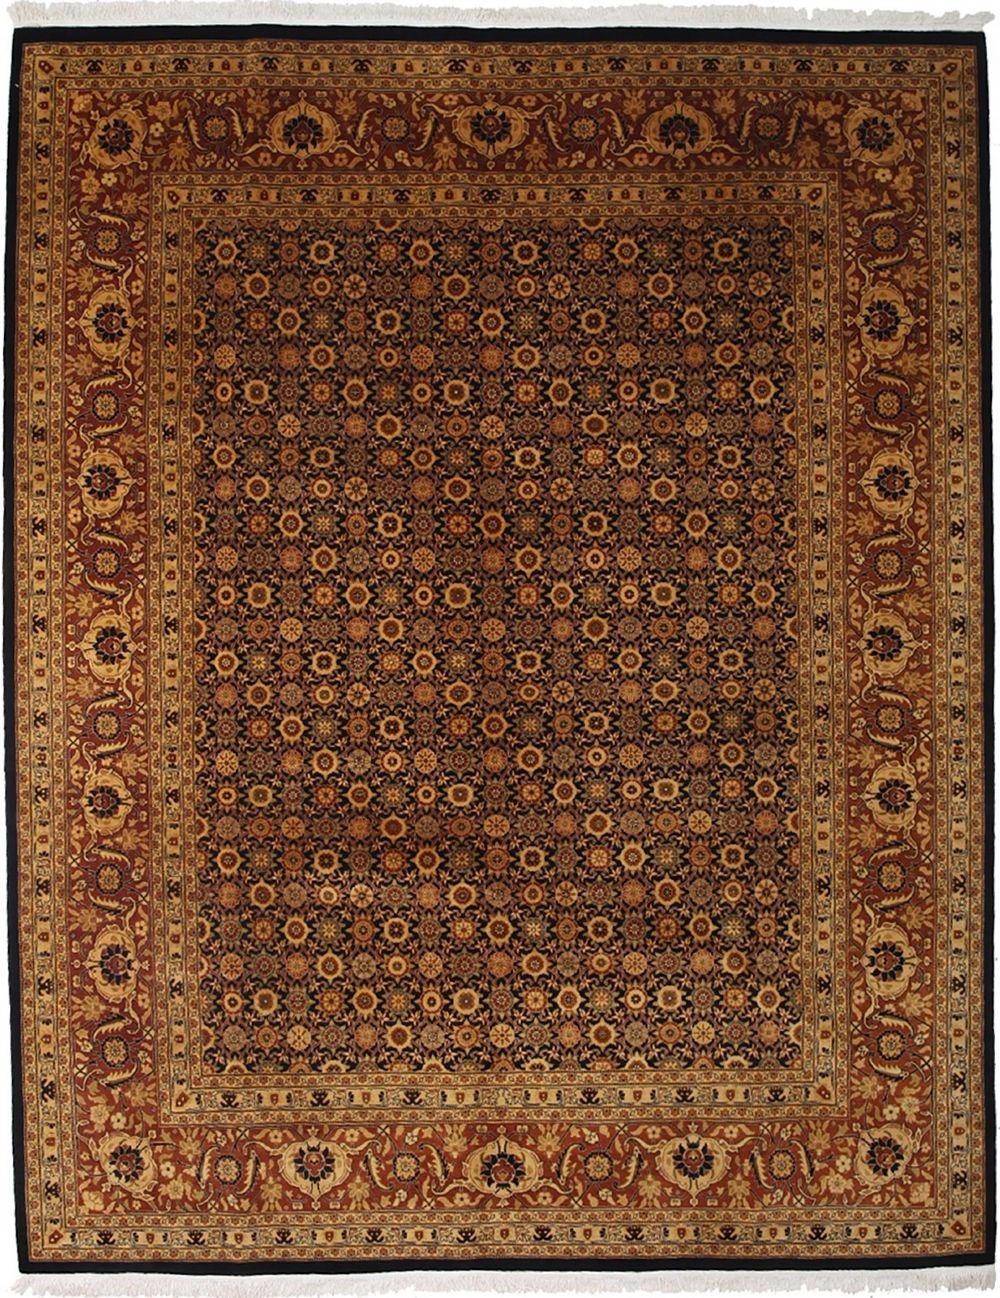 darya herati traditional area rug collection